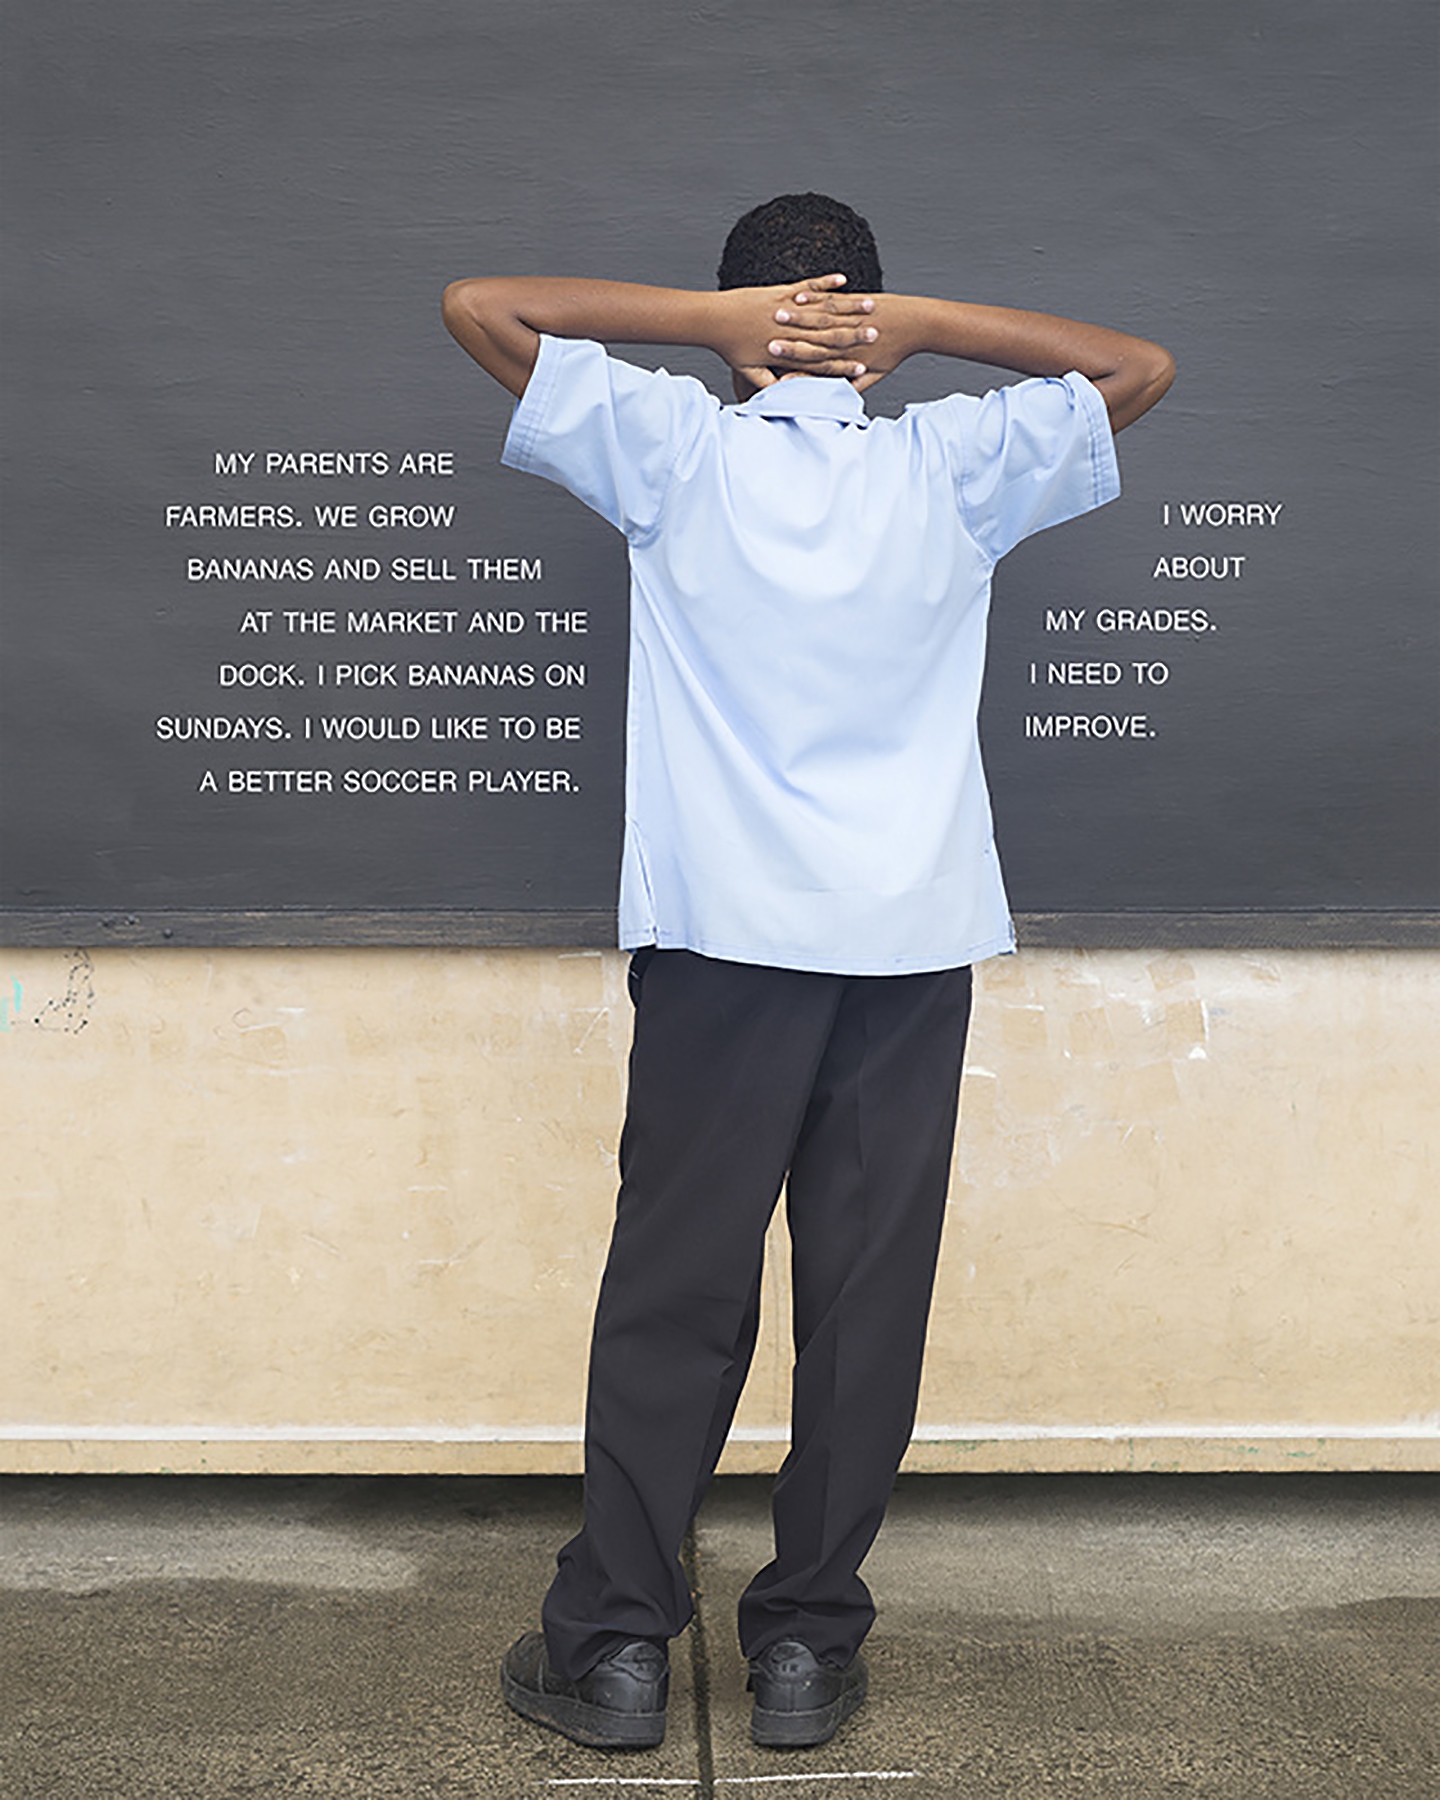 Fourth Grade - To Improve (St. Lucia: Public School), 25 x 20 inches / 63.5 x 50.8 cm, archival pigment print, edition 1/5, 2015